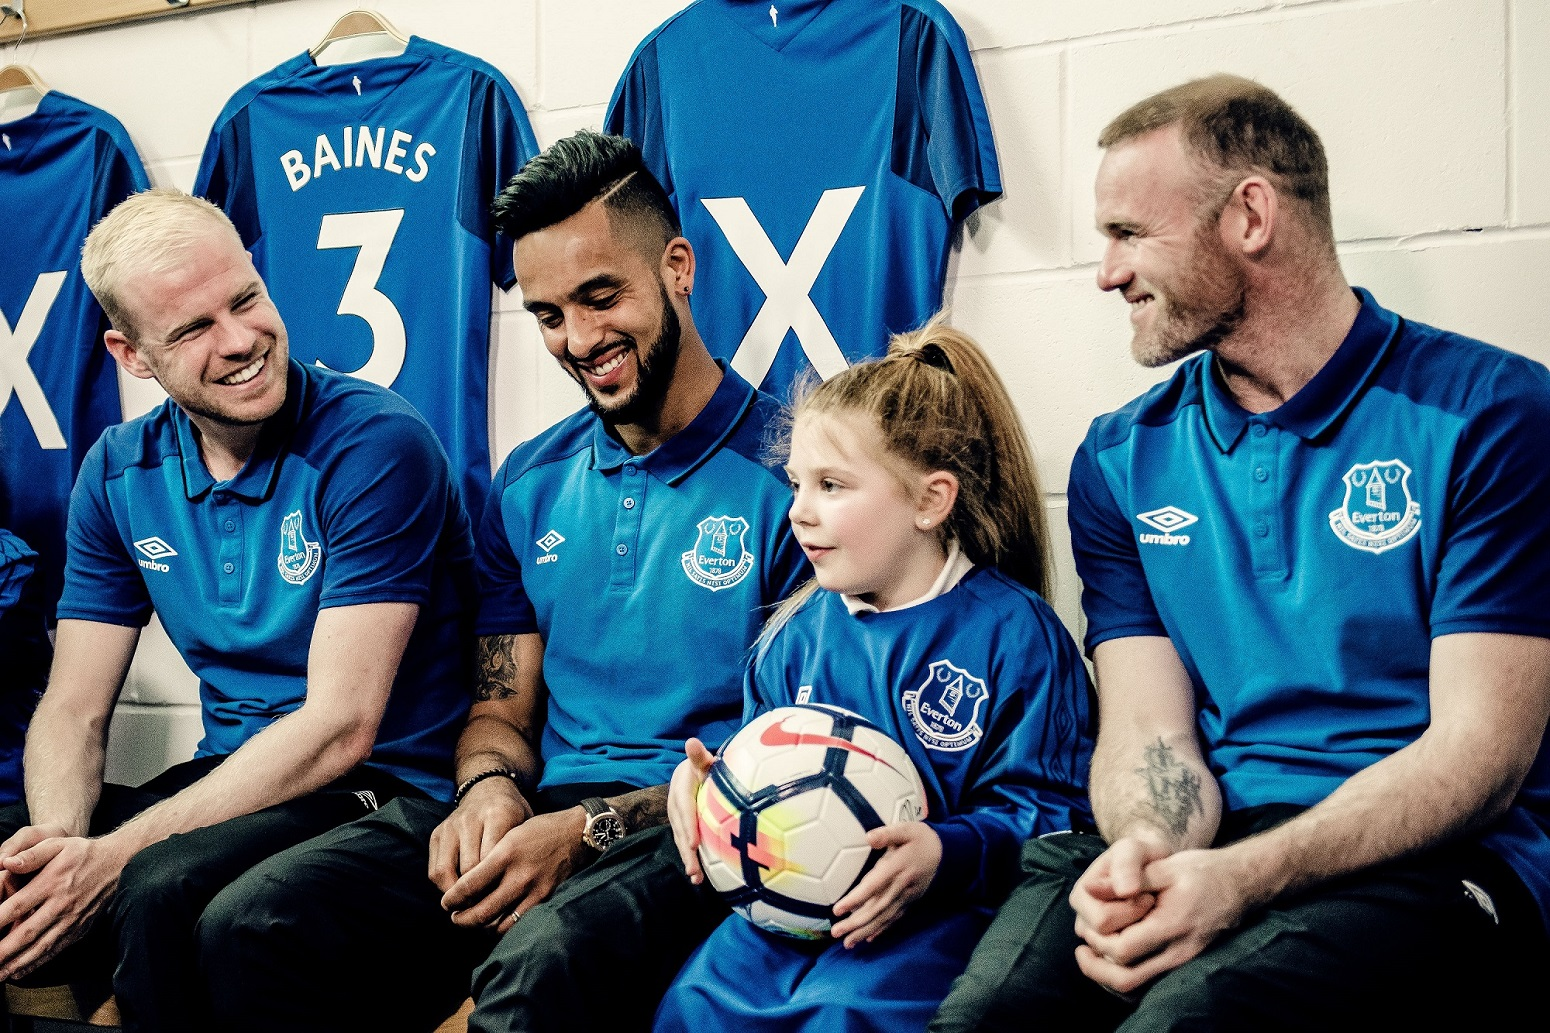 f6b73ea6 Rooney, Crouch and Benitez Star in Digital Campaign to Promote New Premier  League Primary Stars